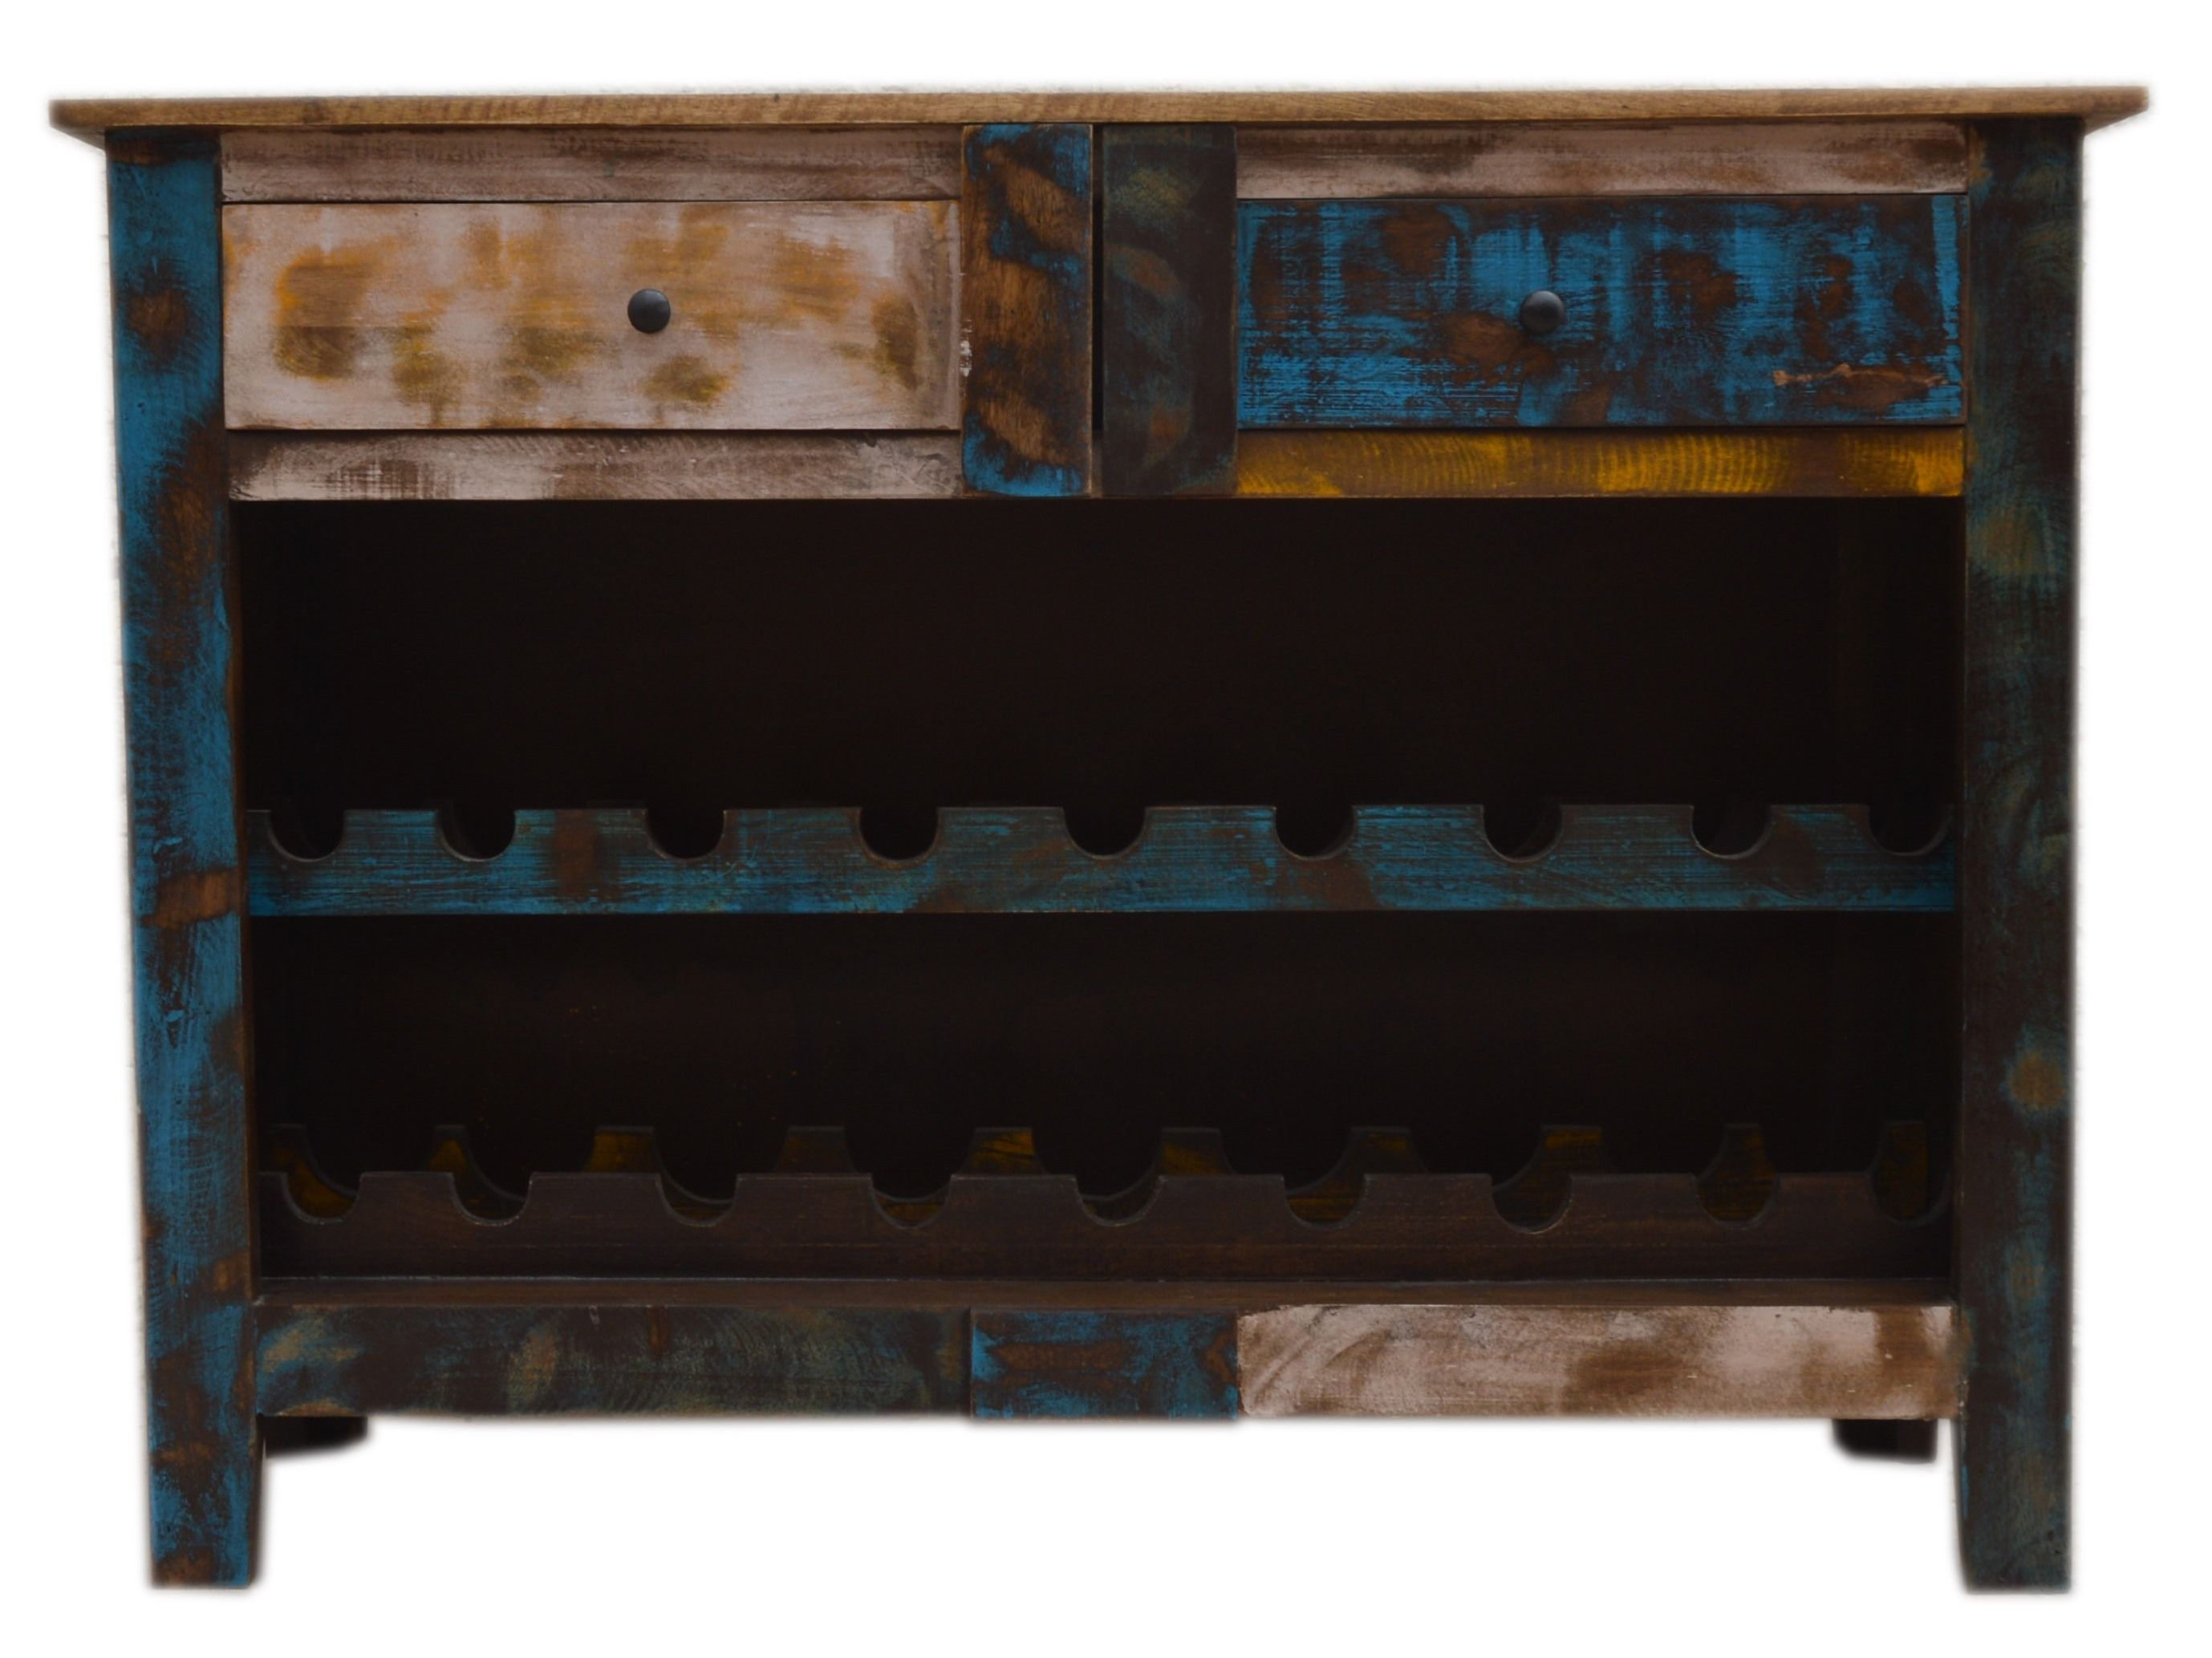 #sideboard #recycledfurniture #reclaimedwoodfurniture #rusticfurniture #exporter #manufacturer #bedroomfurniturte #livingroomfurniture #diningroomfurniture #hotelfurniture #restaurantfurniture #furnitureinindia